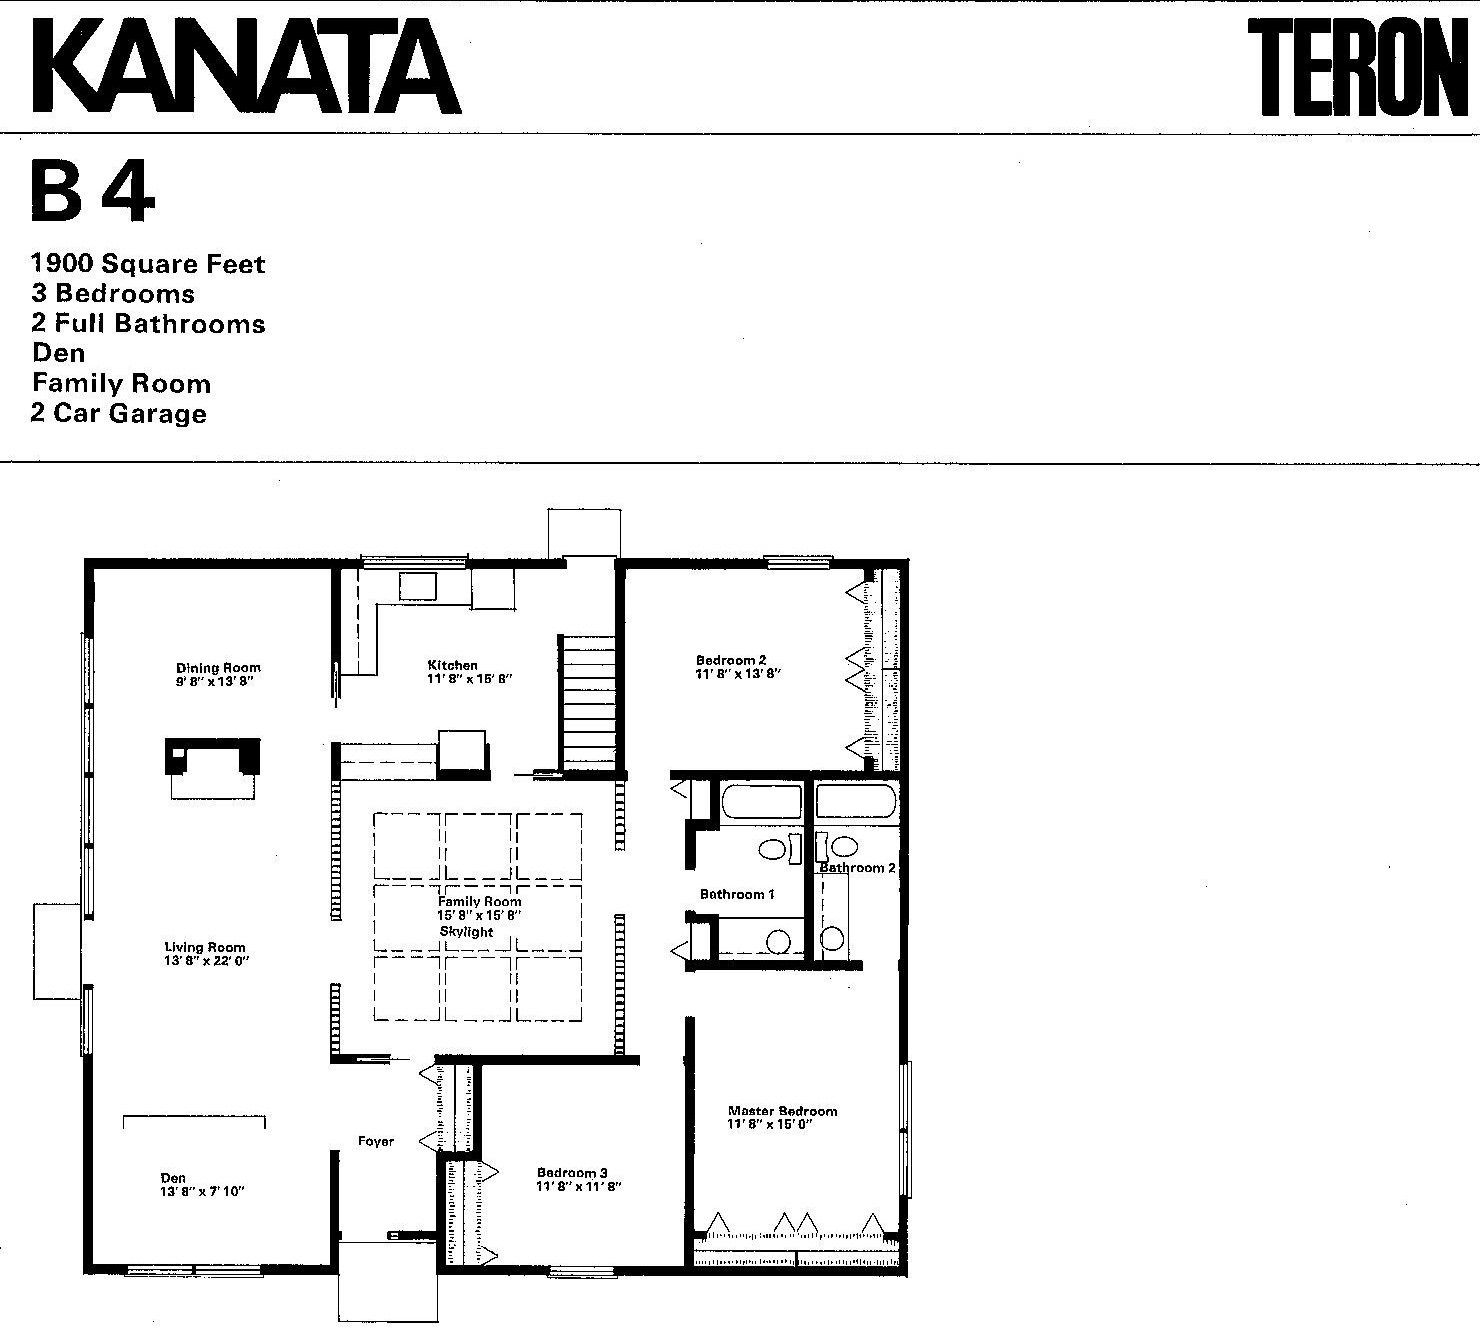 Mid century modern and 1970s era ottawa california modern Eichler atrium floor plan